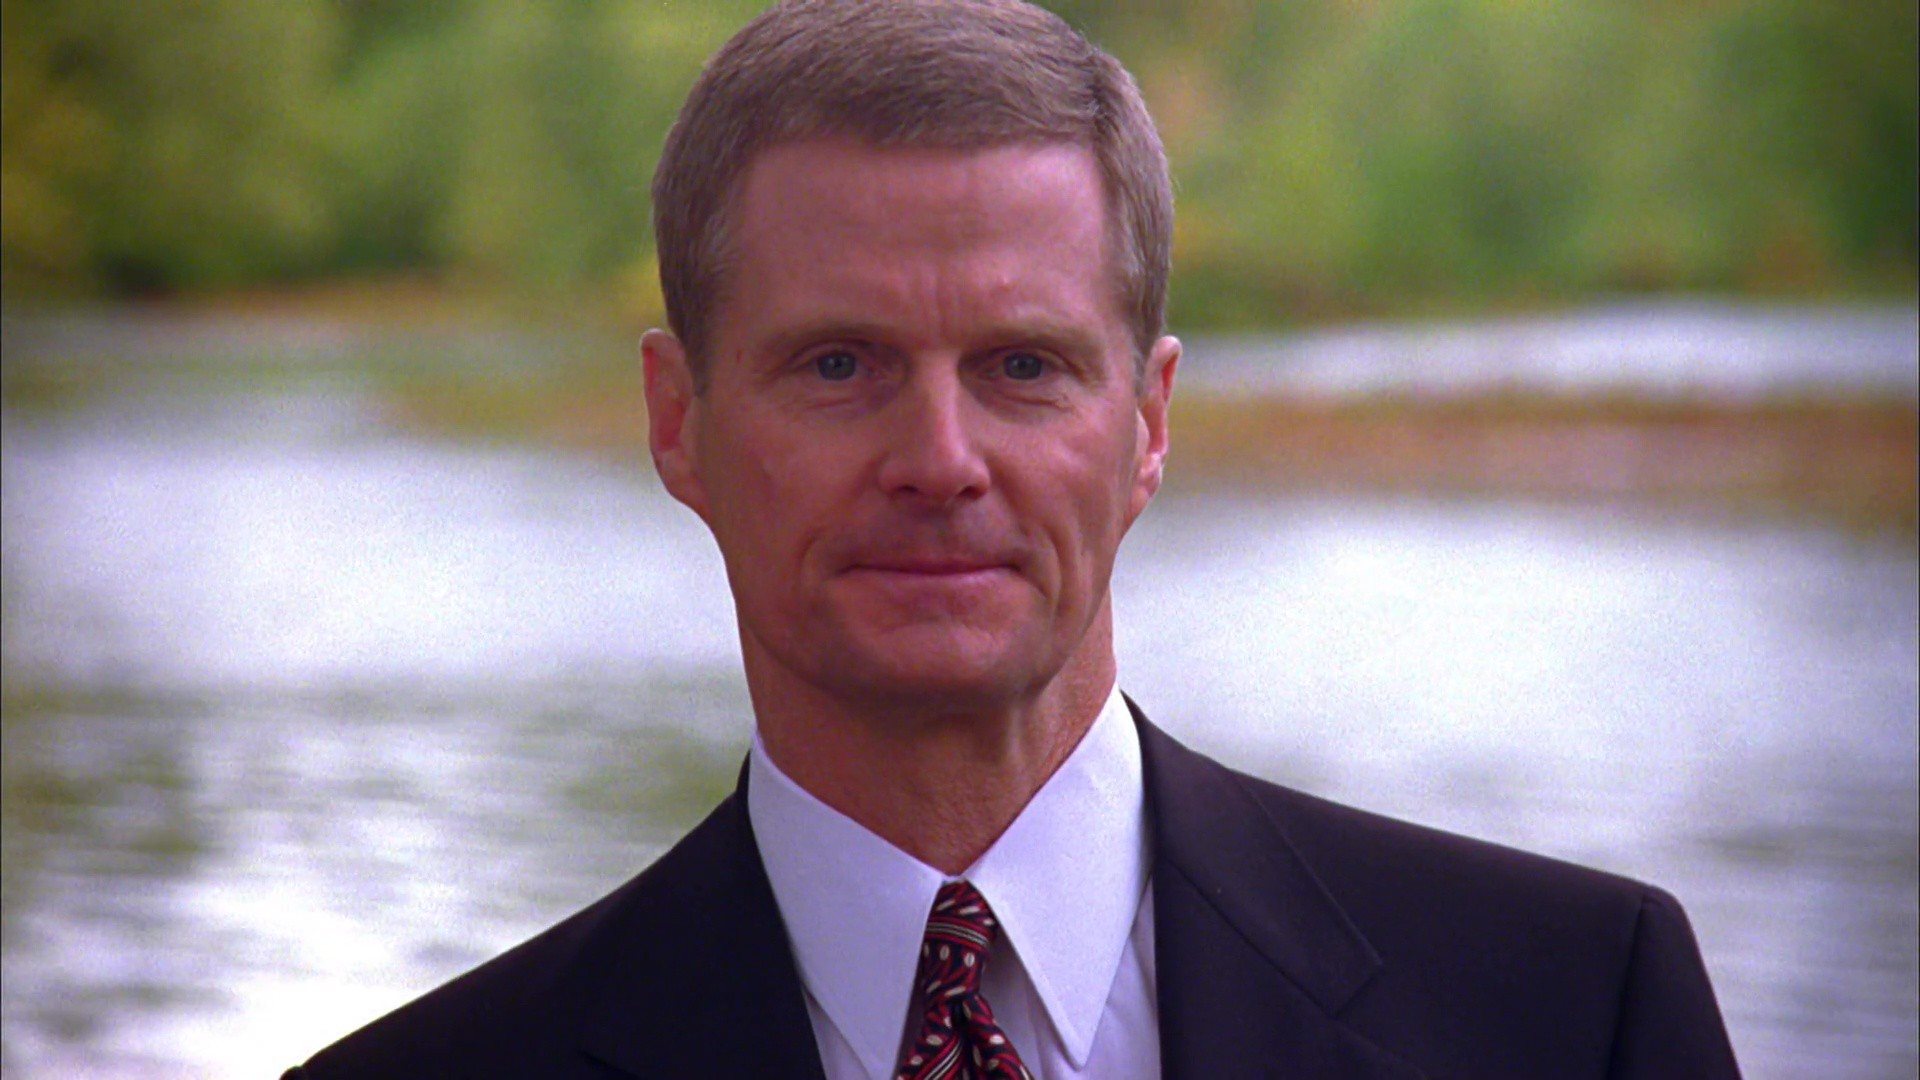 Elder David A. Bednar recounts the restoration of the priesthood and bears his apostolic testimony of the events.